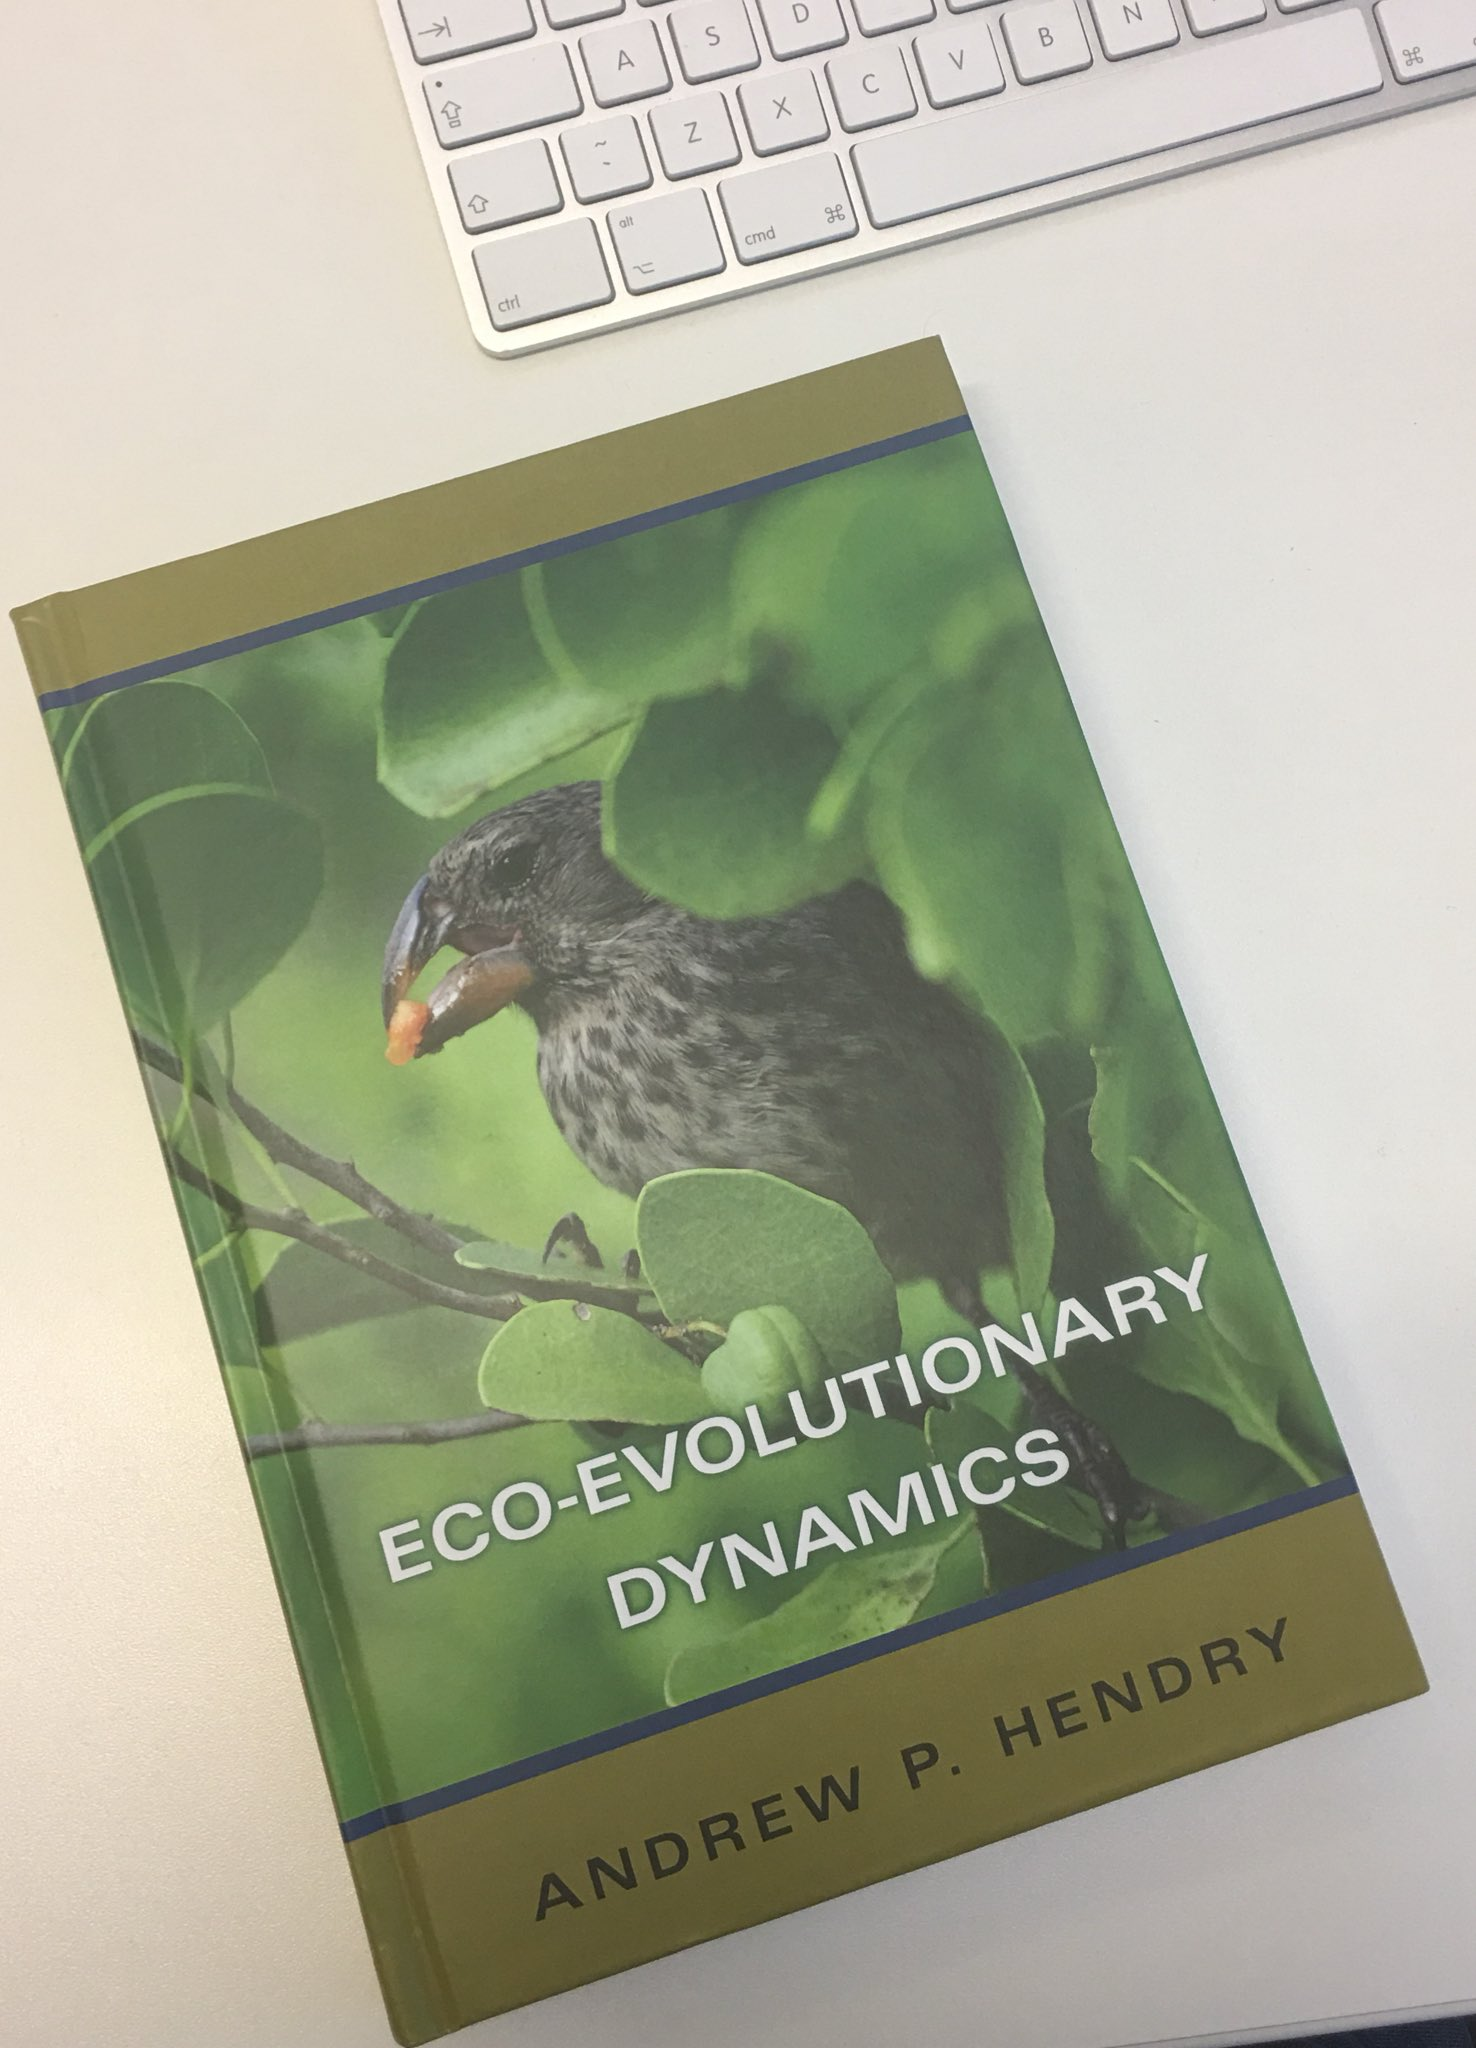 Finally got my hands on a copy on Eco-evolutionary Dynamics by @EcoEvoEvoEco https://t.co/Zgbdx0A1tM